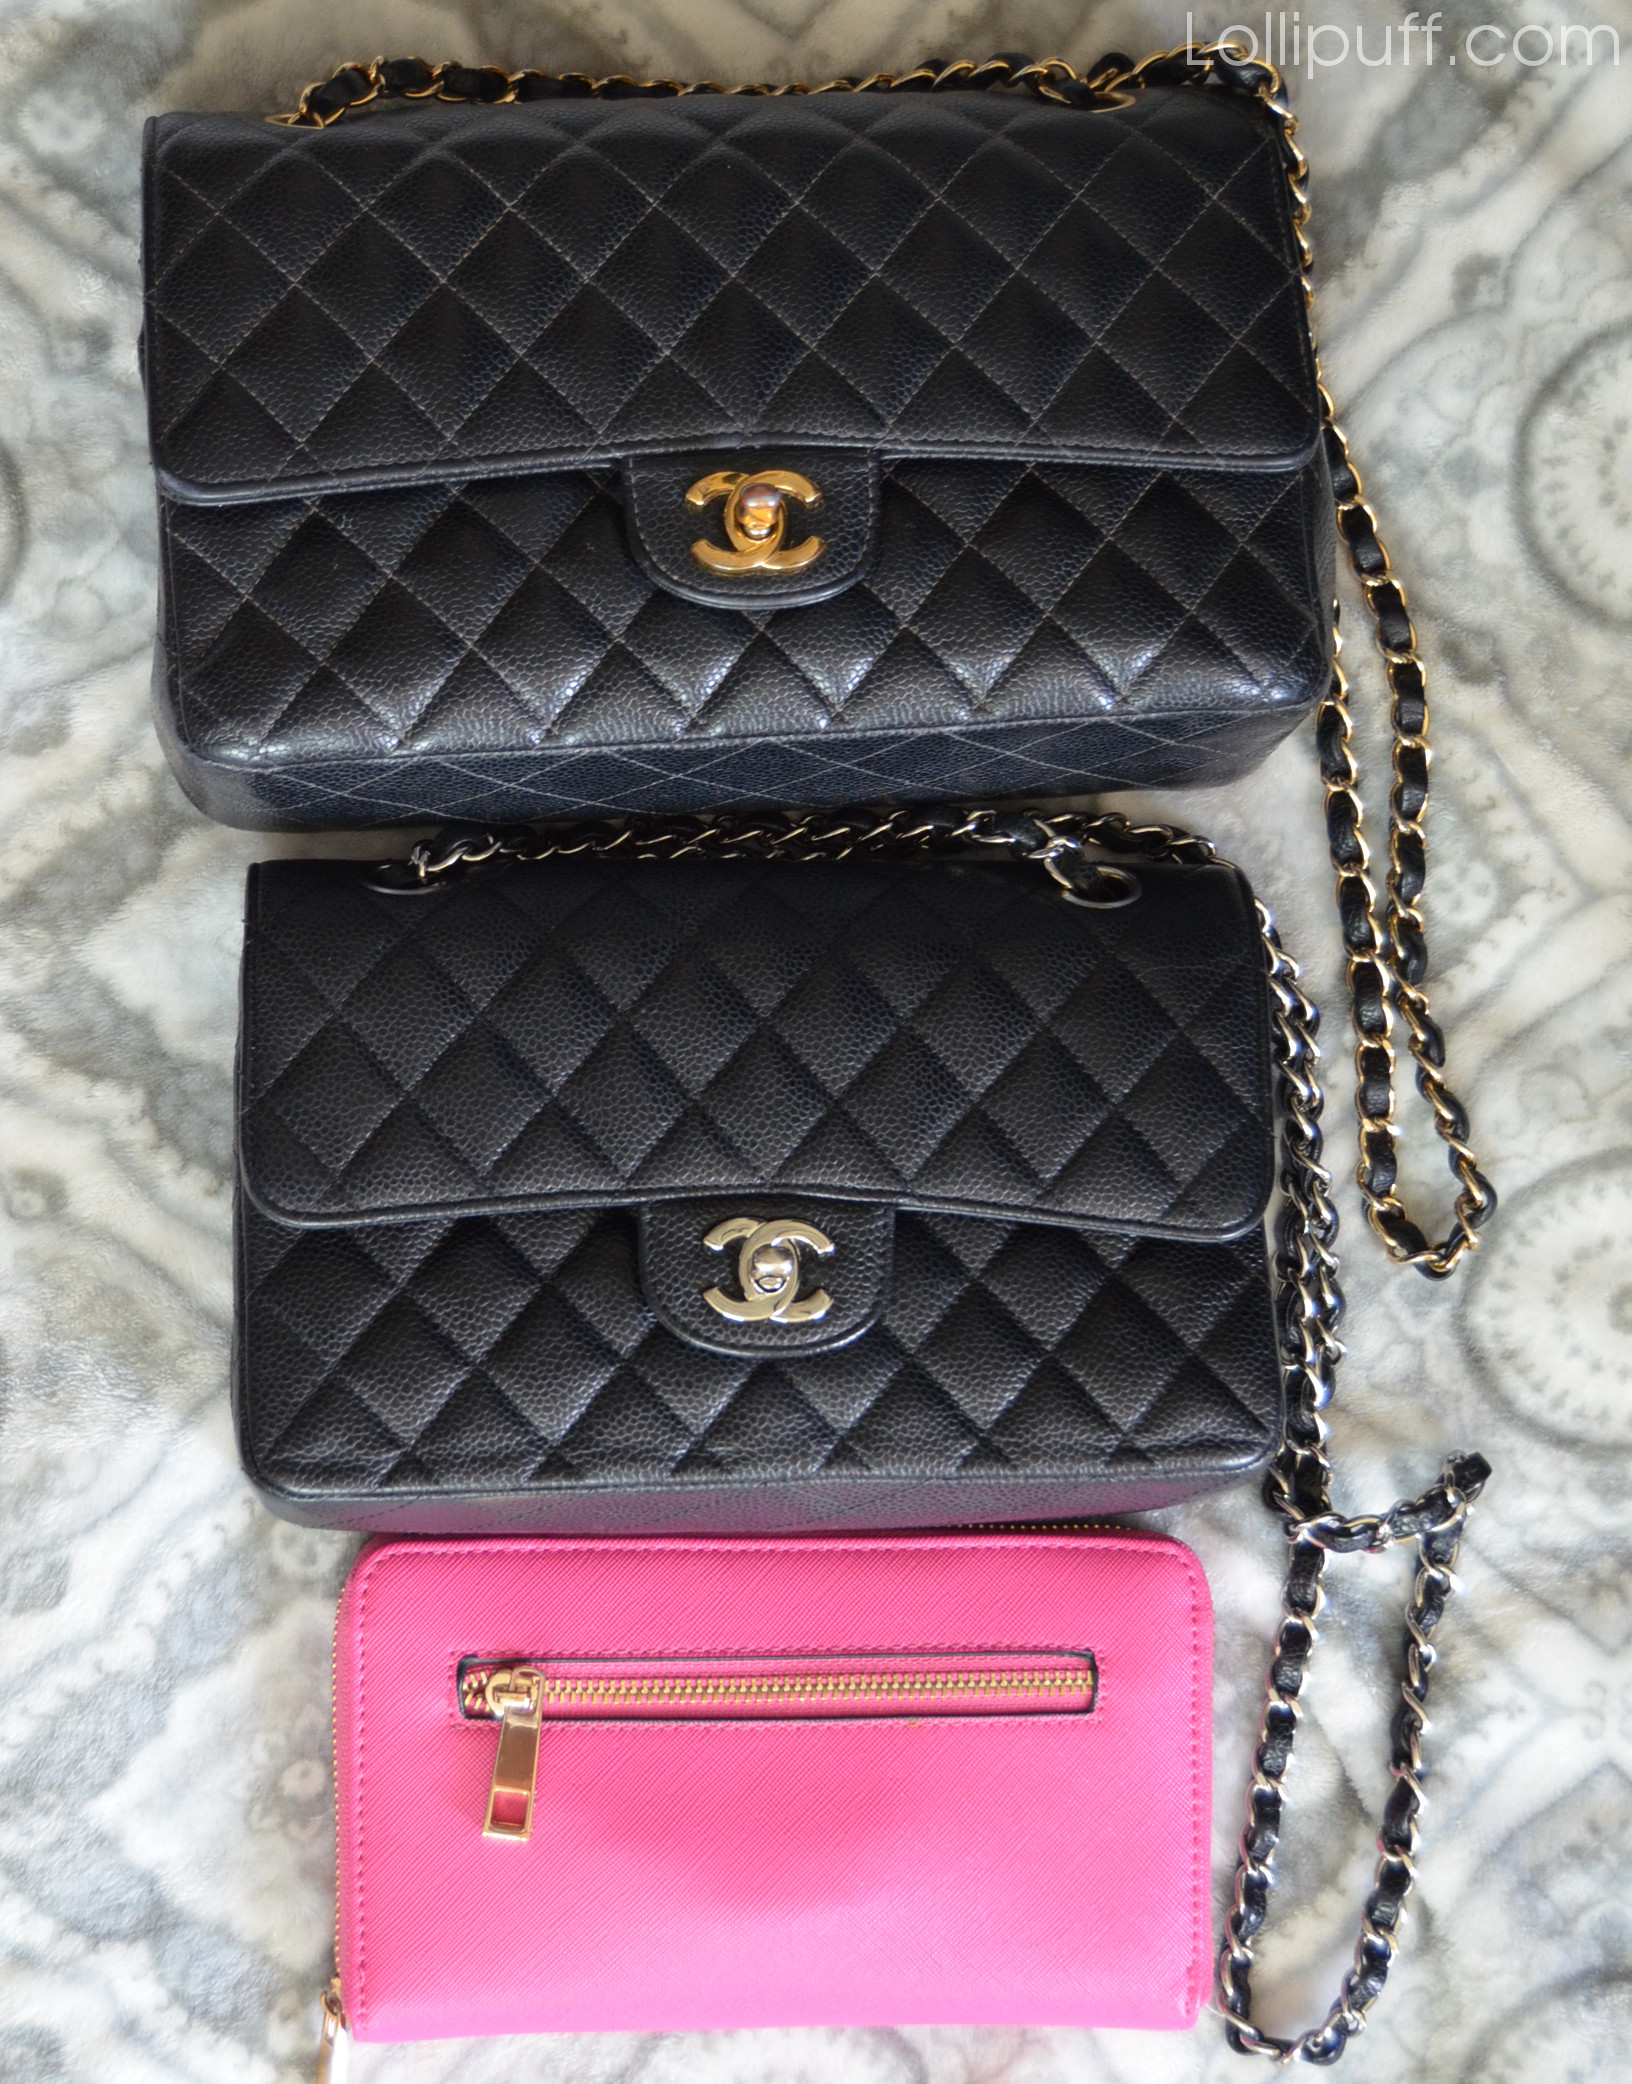 64fbccaddfd size difference and holding capacity of Chanel small vs medium double flap  bag